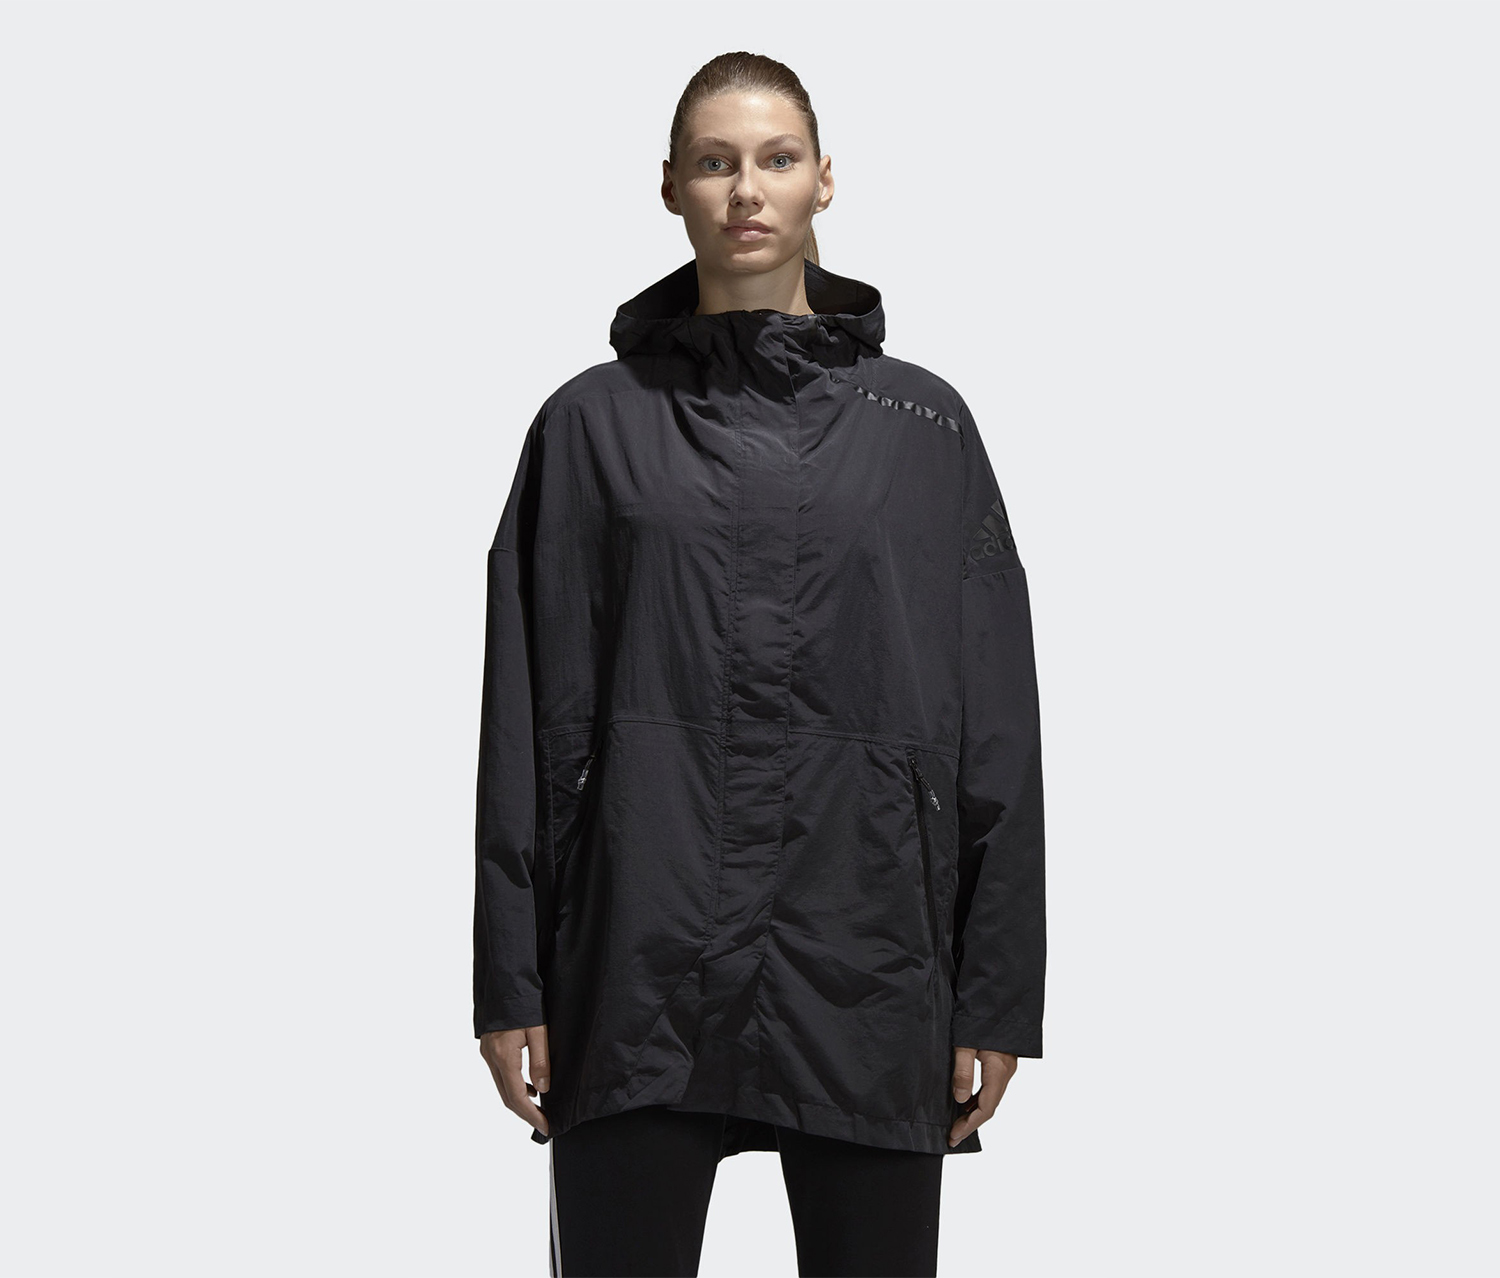 Adidas Women's Jacket, Black